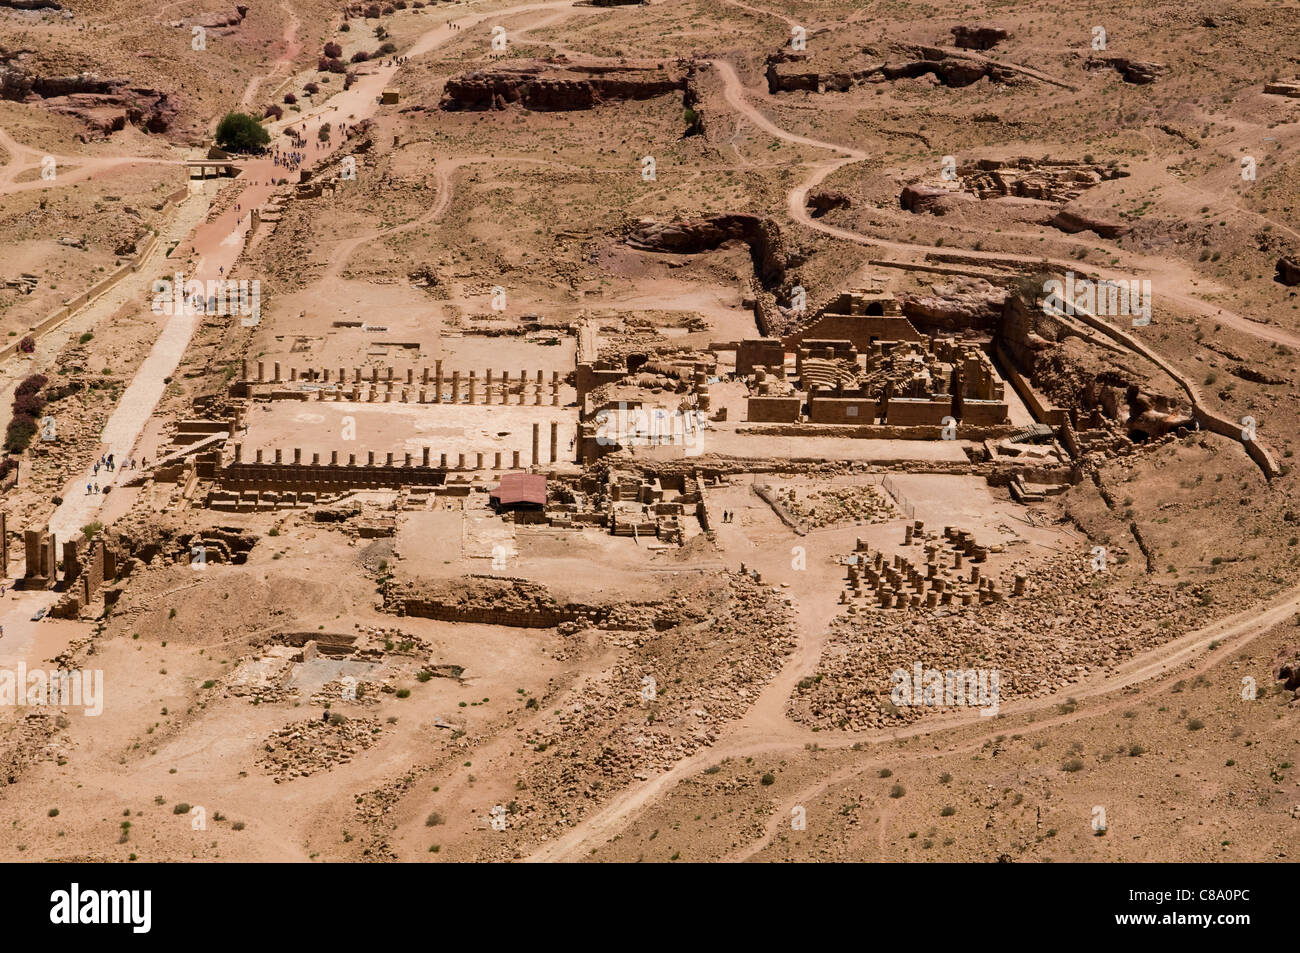 aerial view of the ancient city in Petra, the UNESCO World Heritage Site in Jordan Stock Photo